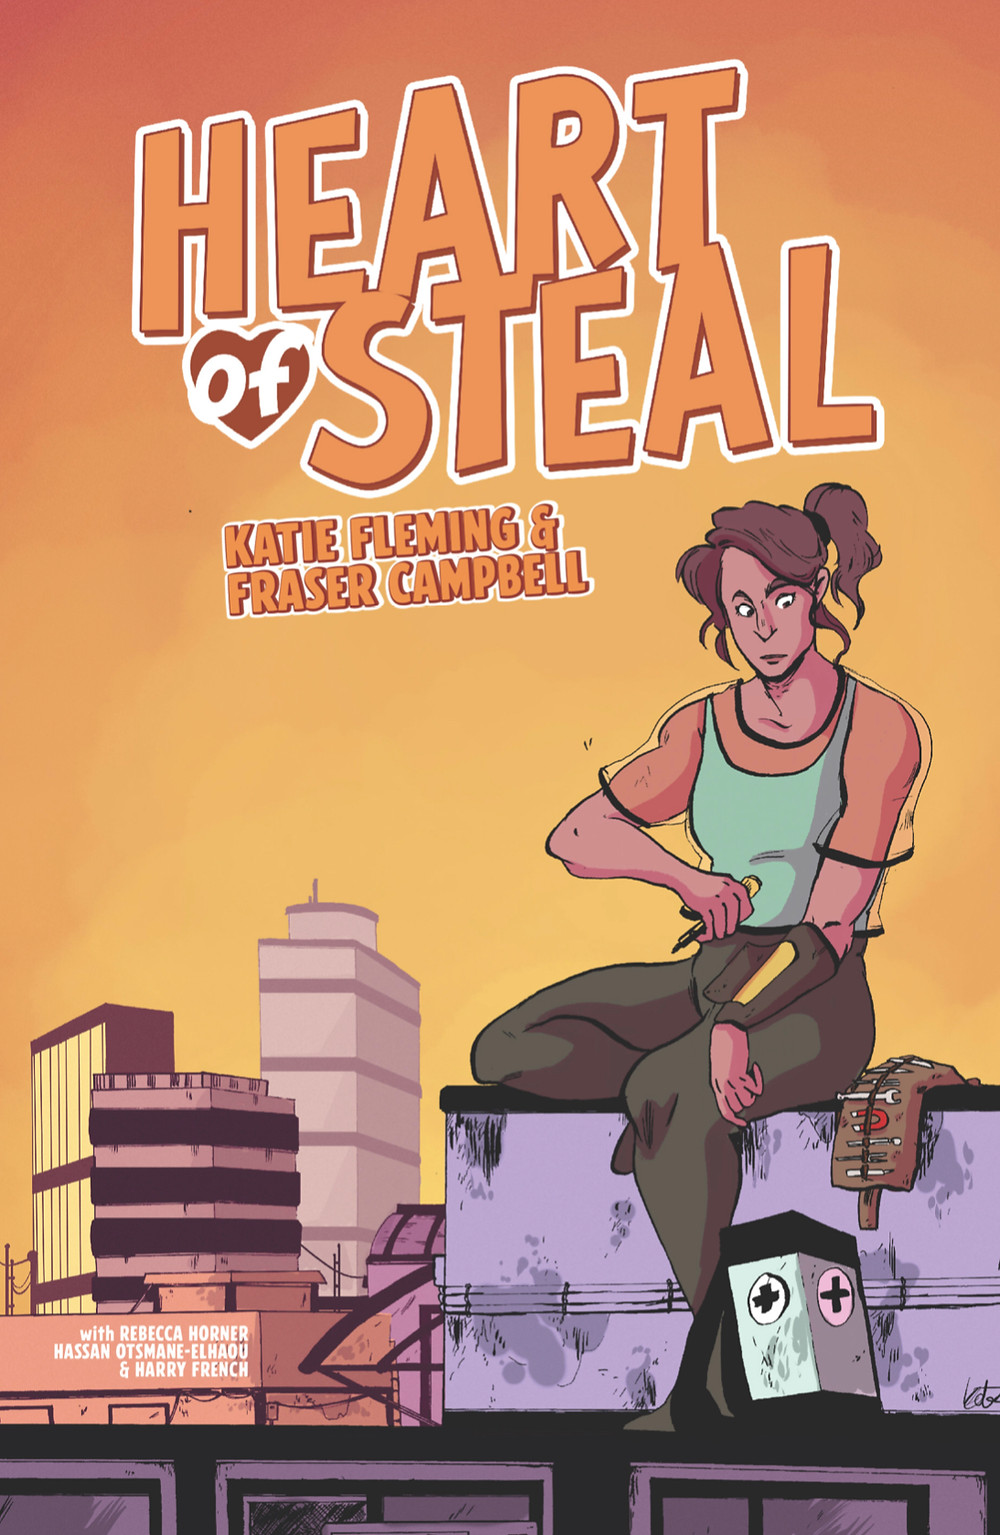 Heart of Steal, issue #1, cover, Cabal Comics, Campbell/Fleming